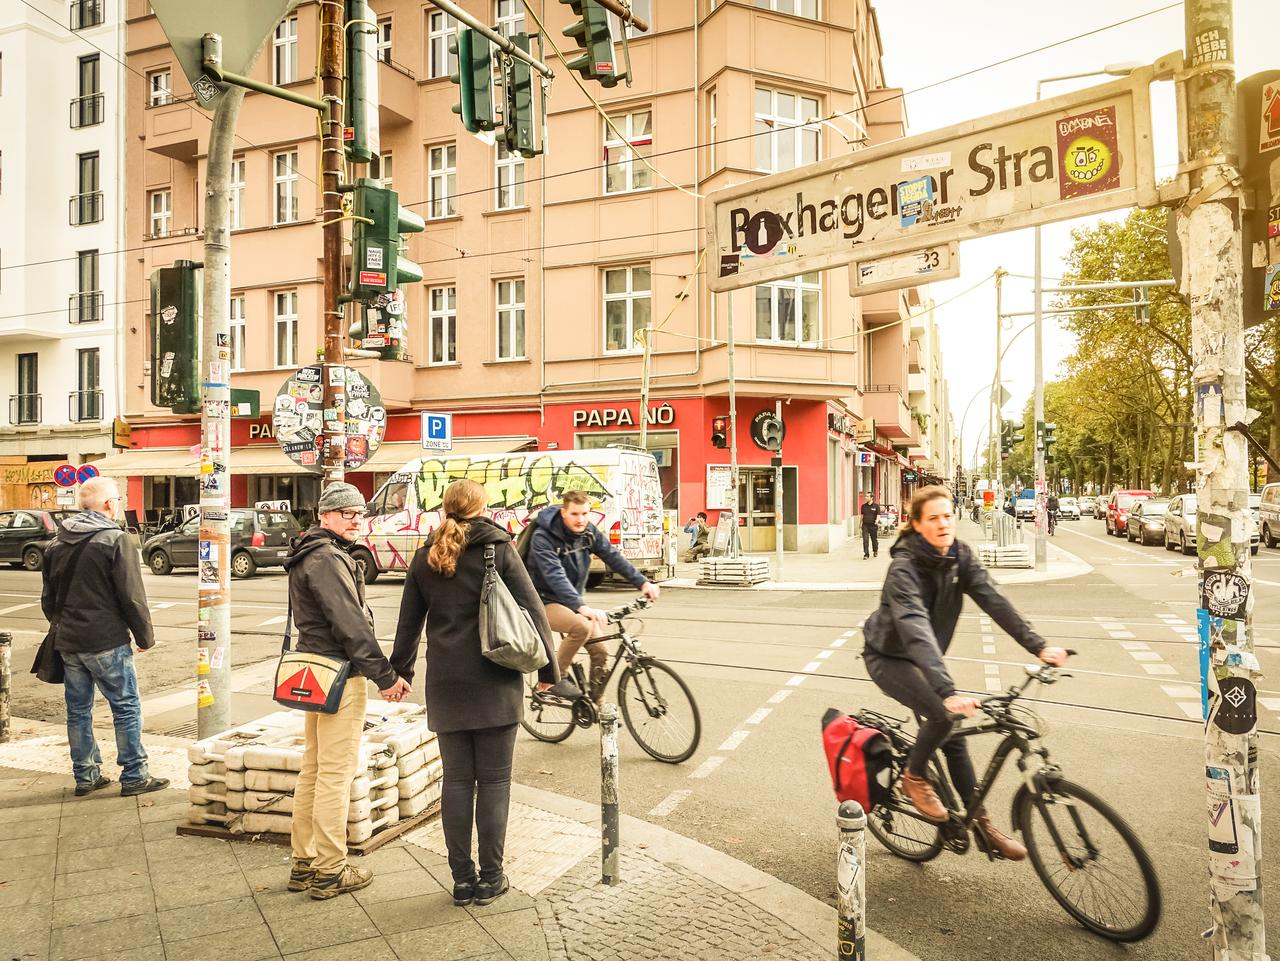 Berlin, Germany - October 7, 2016: motion view of everyday life with bikers and pedestrians at beginning of Box Hagener Strasse in the area of Friedrichshain in a standard grey autumn day